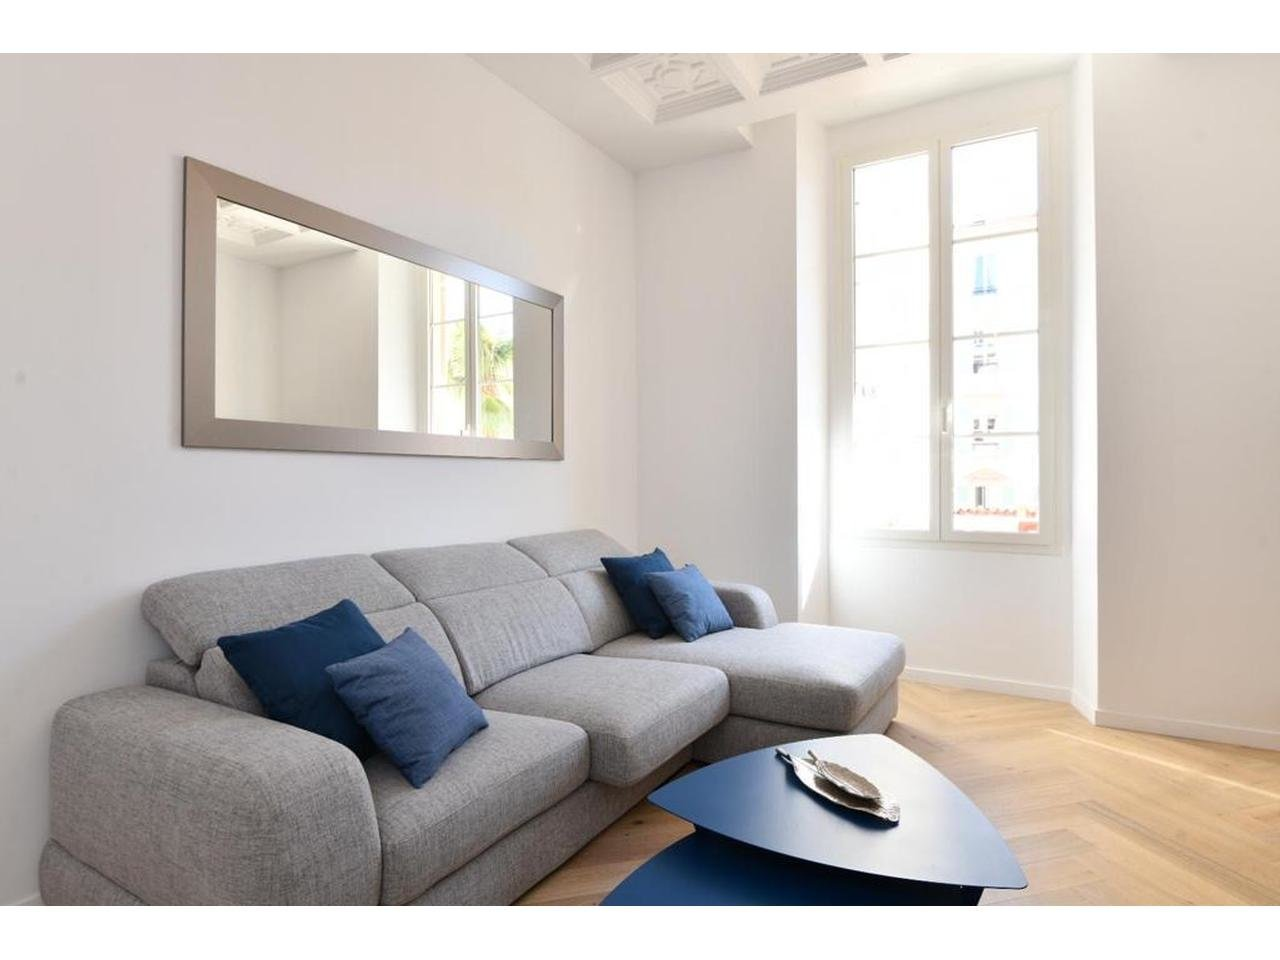 Sale Apartment - Nice Carré d'or Carré d'or - 535,000 €